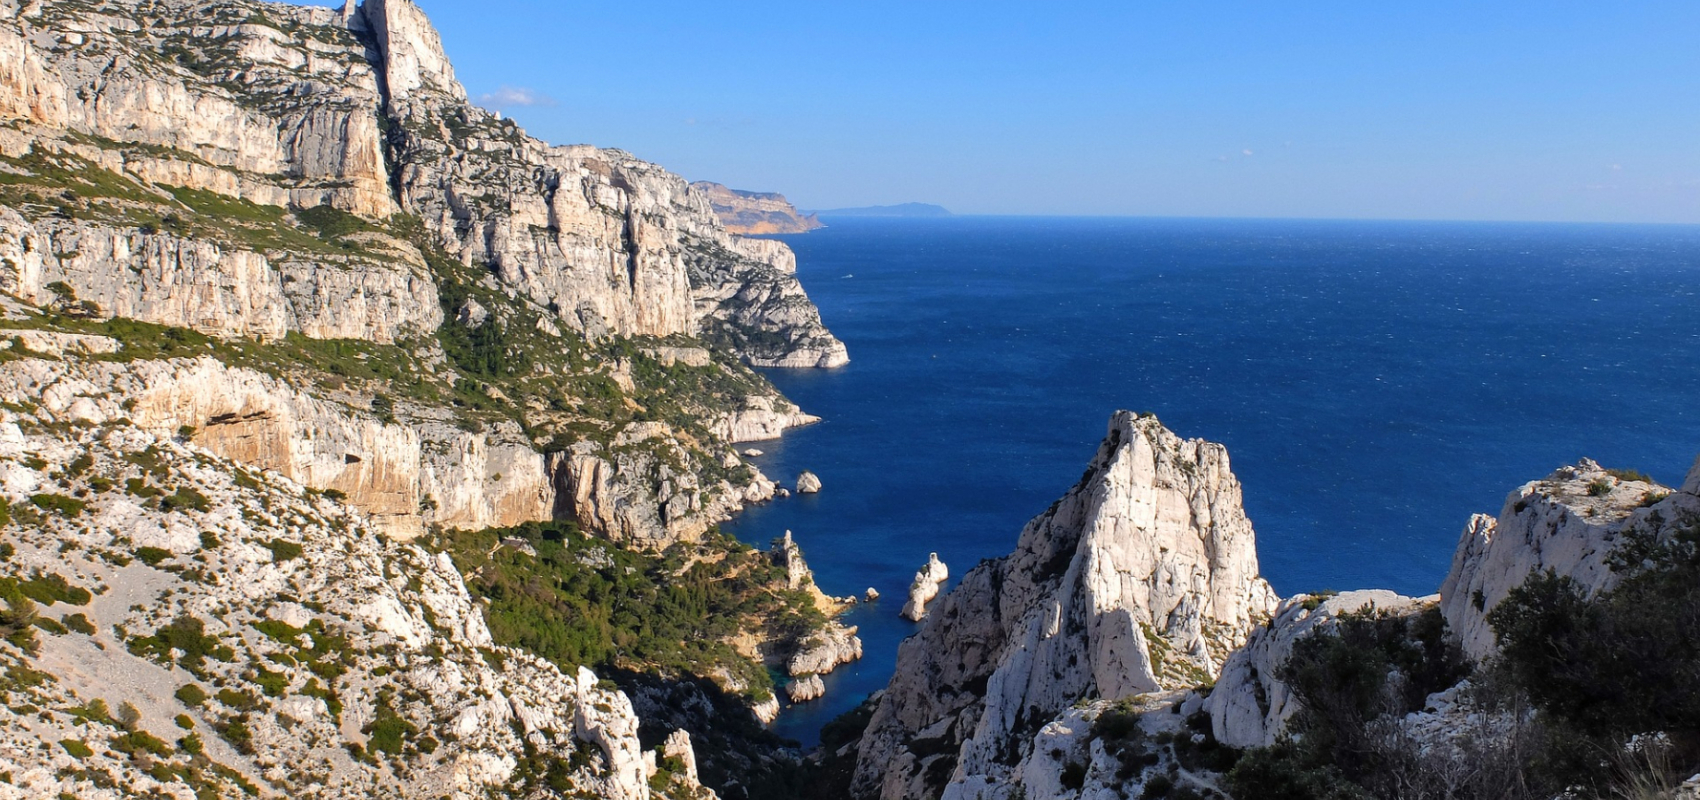 Calanques of Cassis coastal view